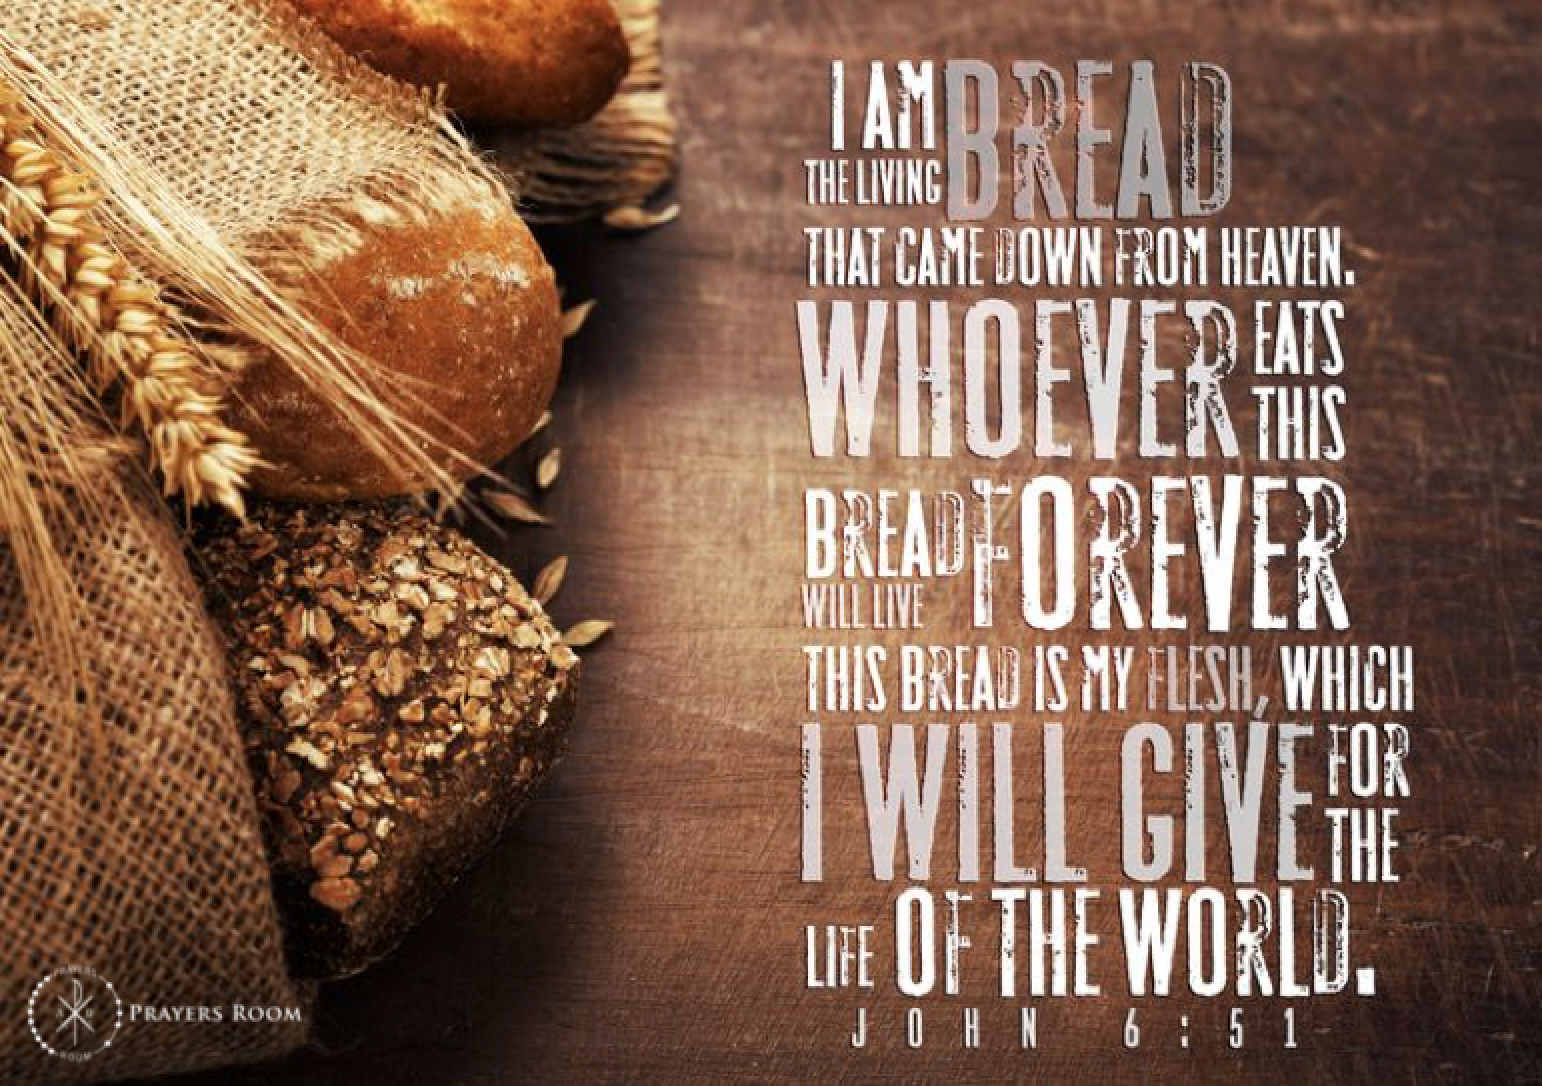 https://prayersroom.com/wp-content/uploads/2016/05/I-am-the-Living-Bread-come-down-from-heaven-John-6-51.png